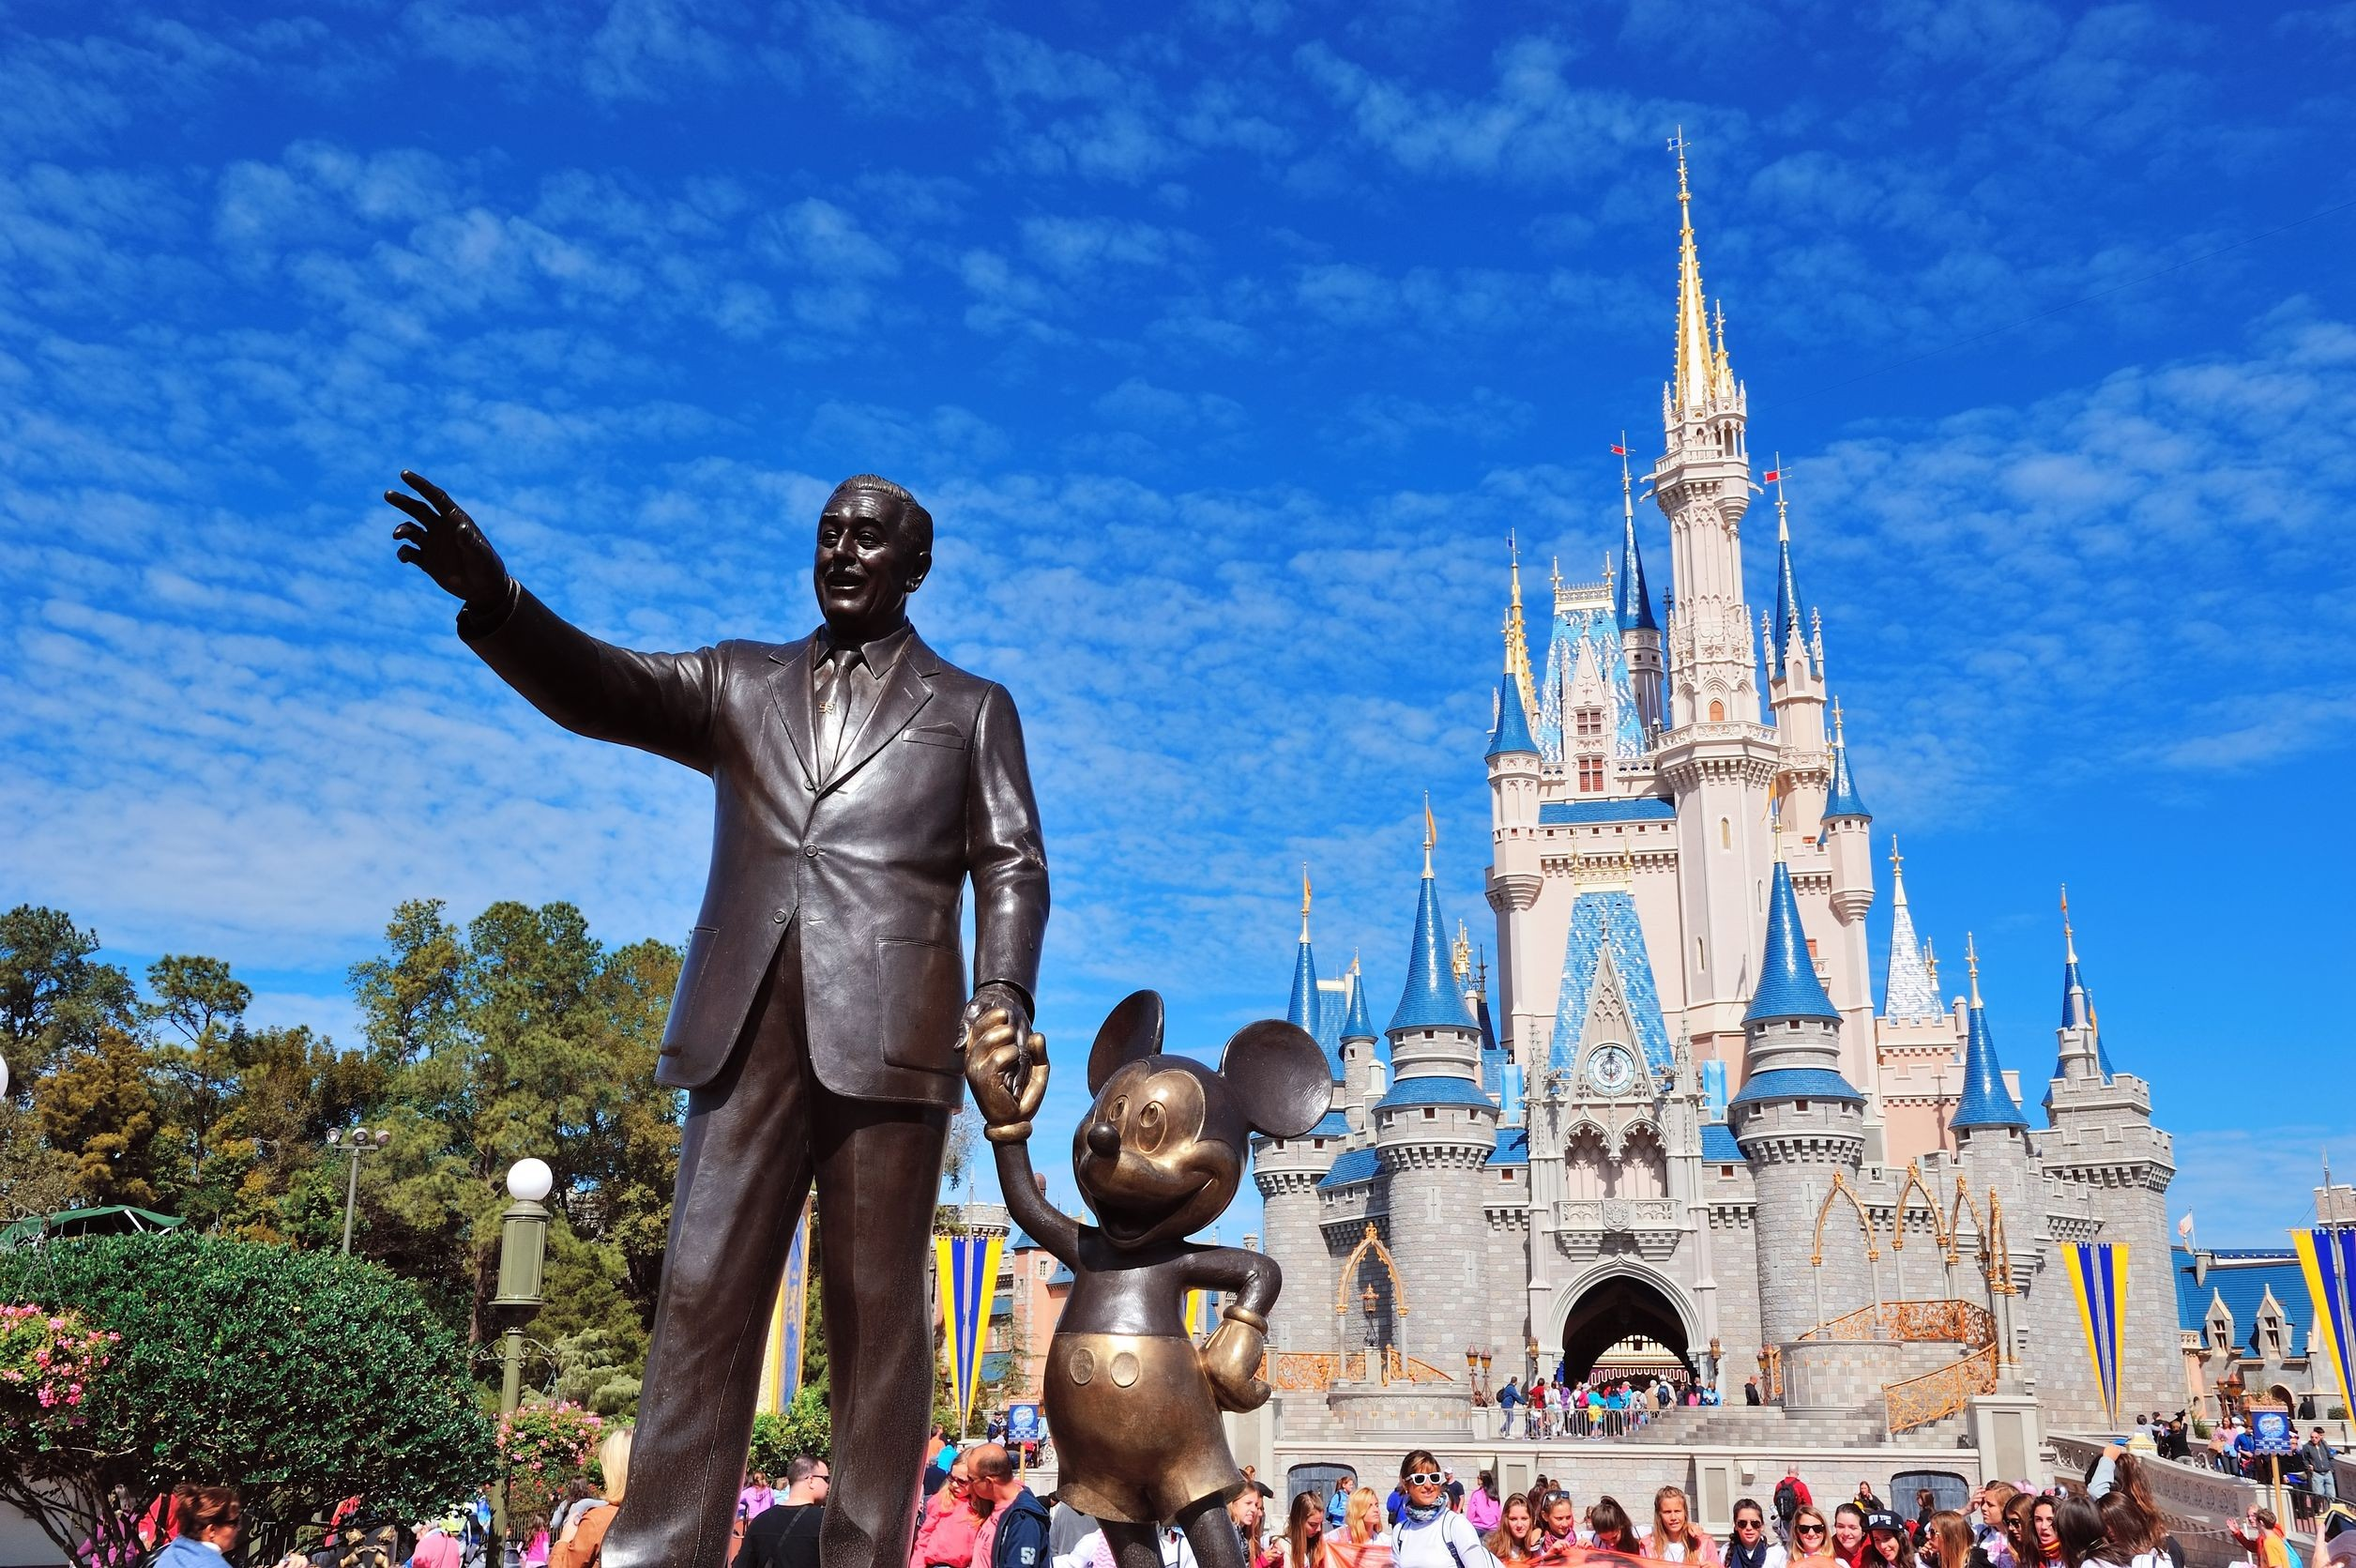 Disney Online - The Official Home Page of The